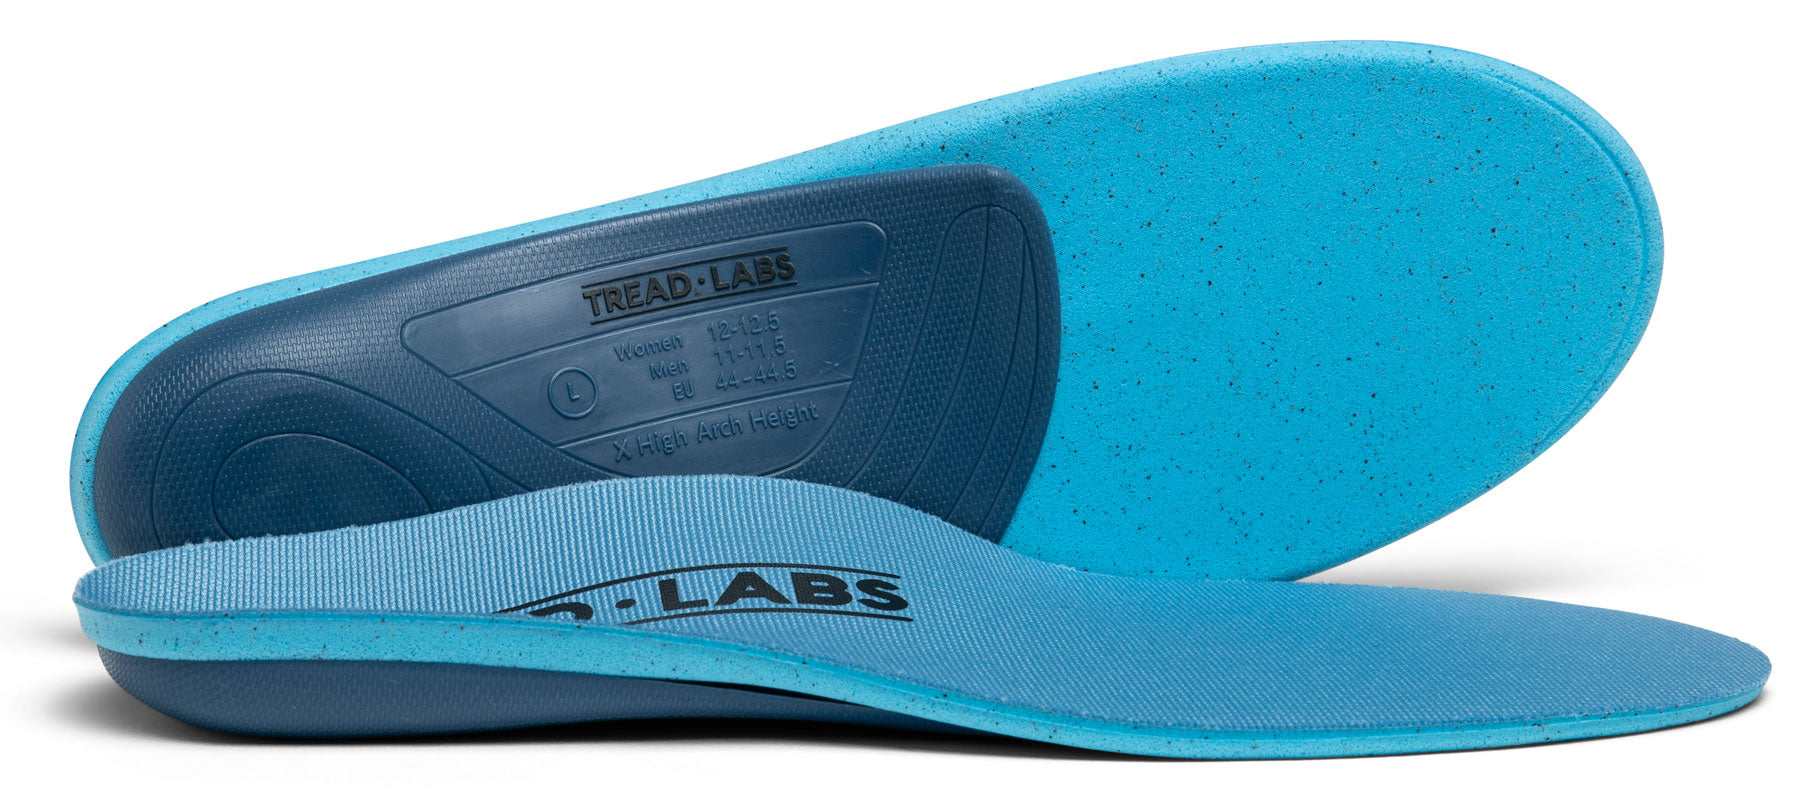 Pace Insoles